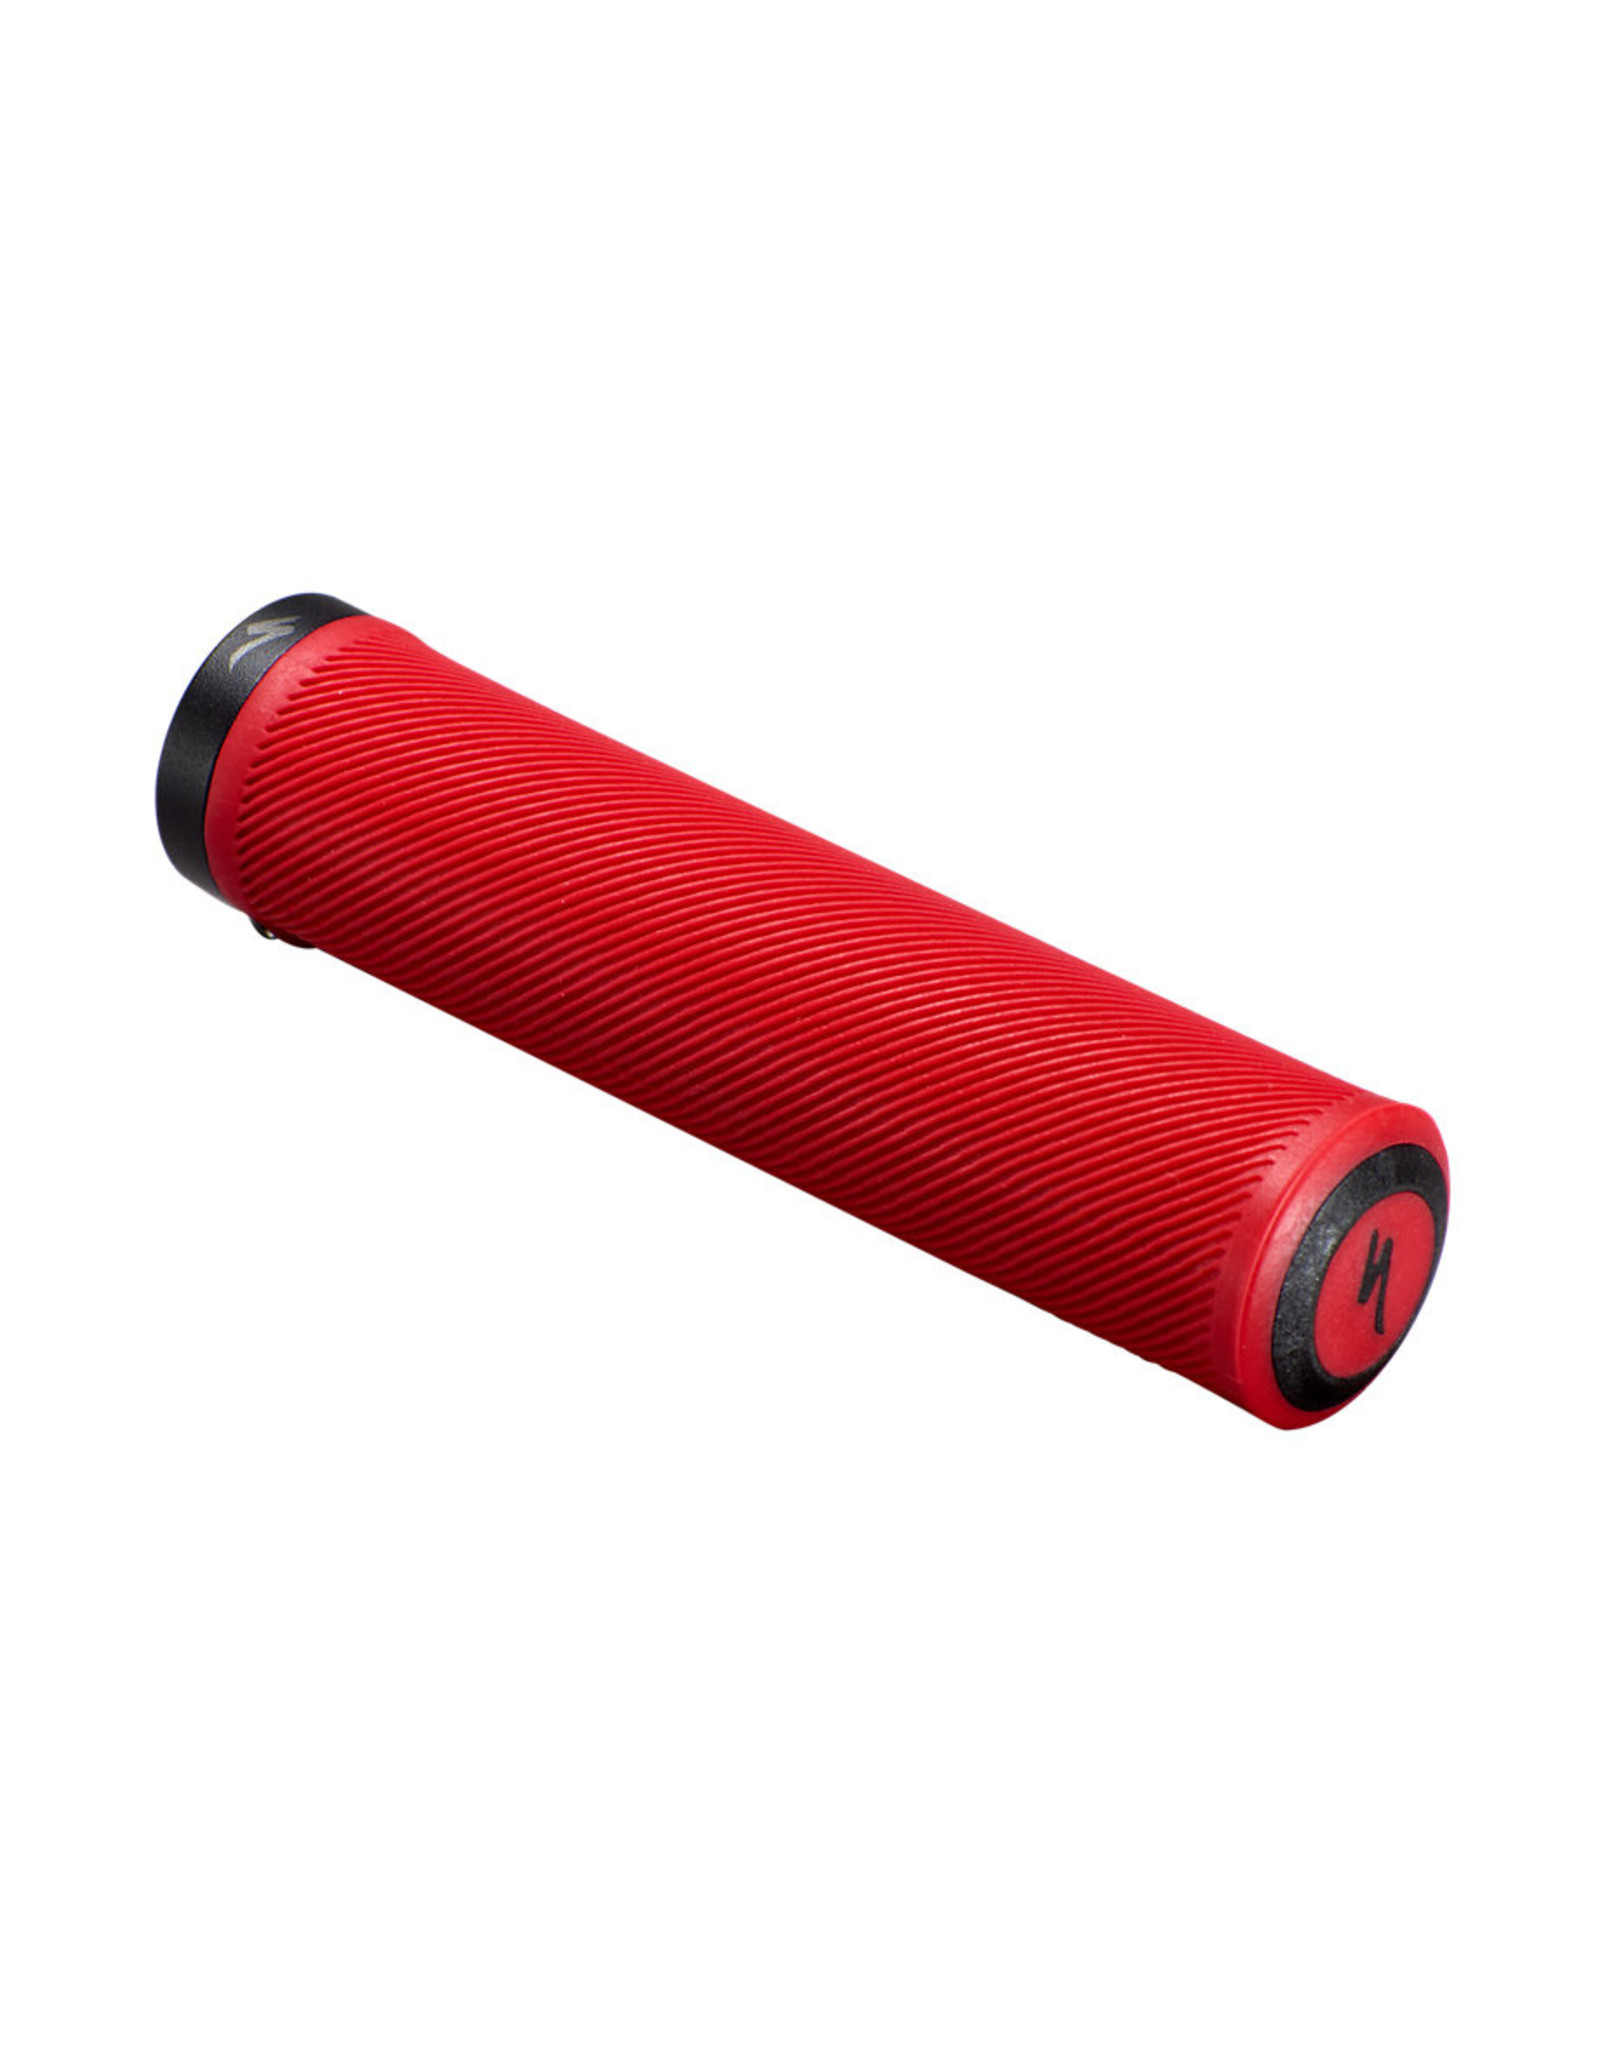 SPECIALIZED Specialzieds Trail Grip - Red - Small